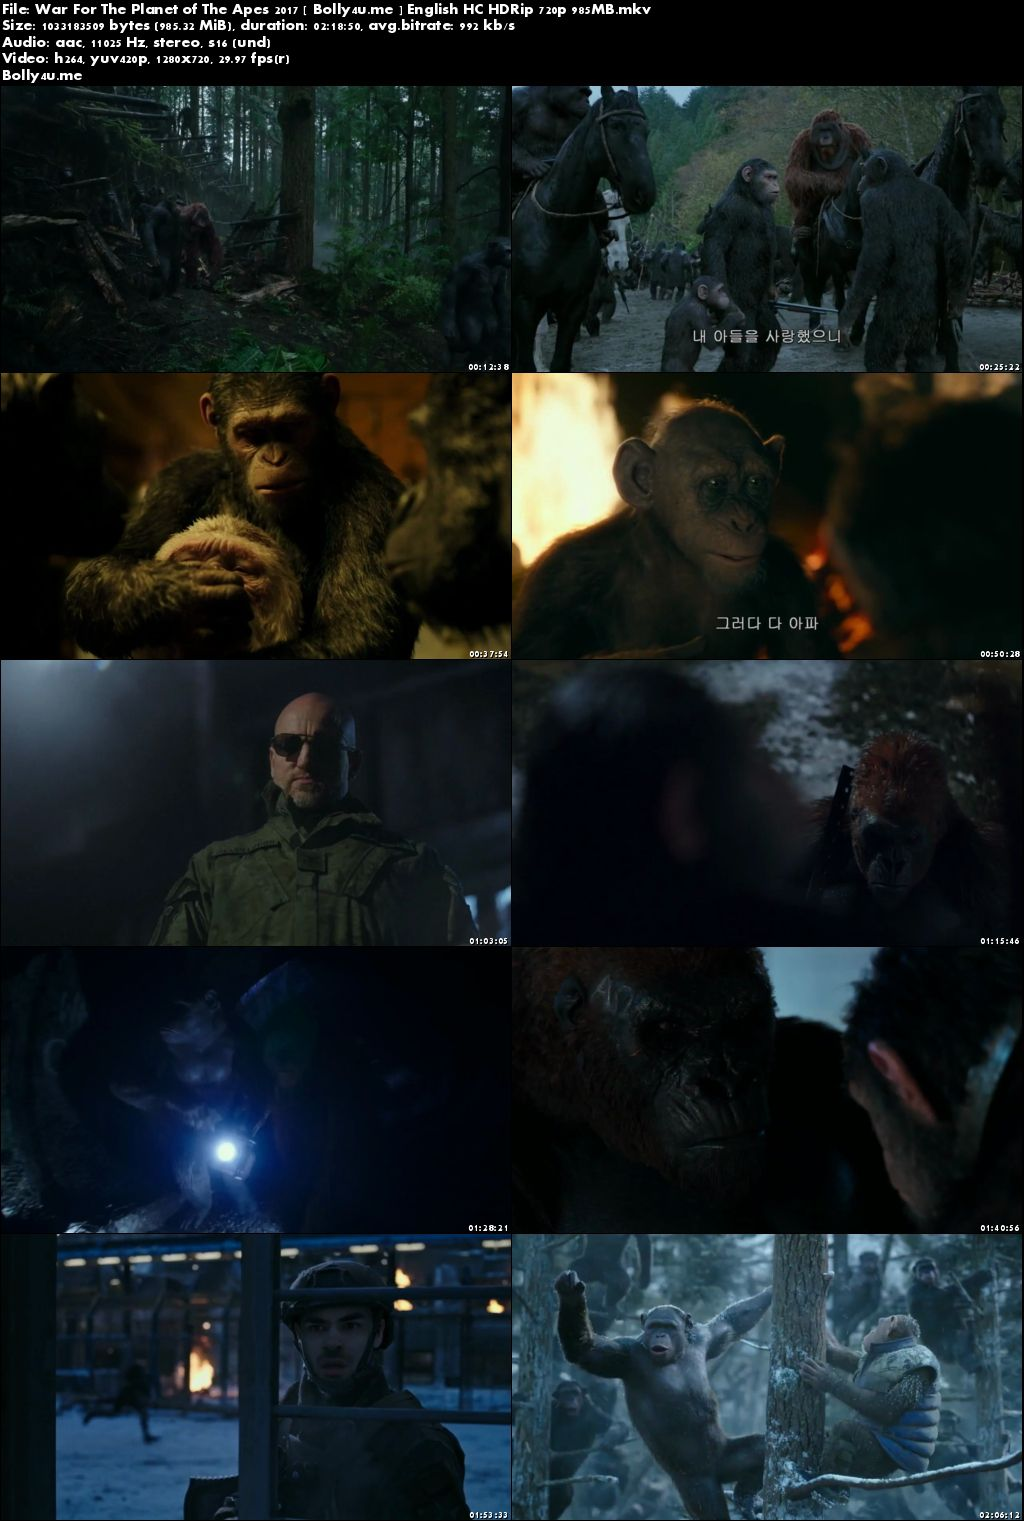 War For The Planet of The Apes 2017 HC HDRip 950MB English 720p Download